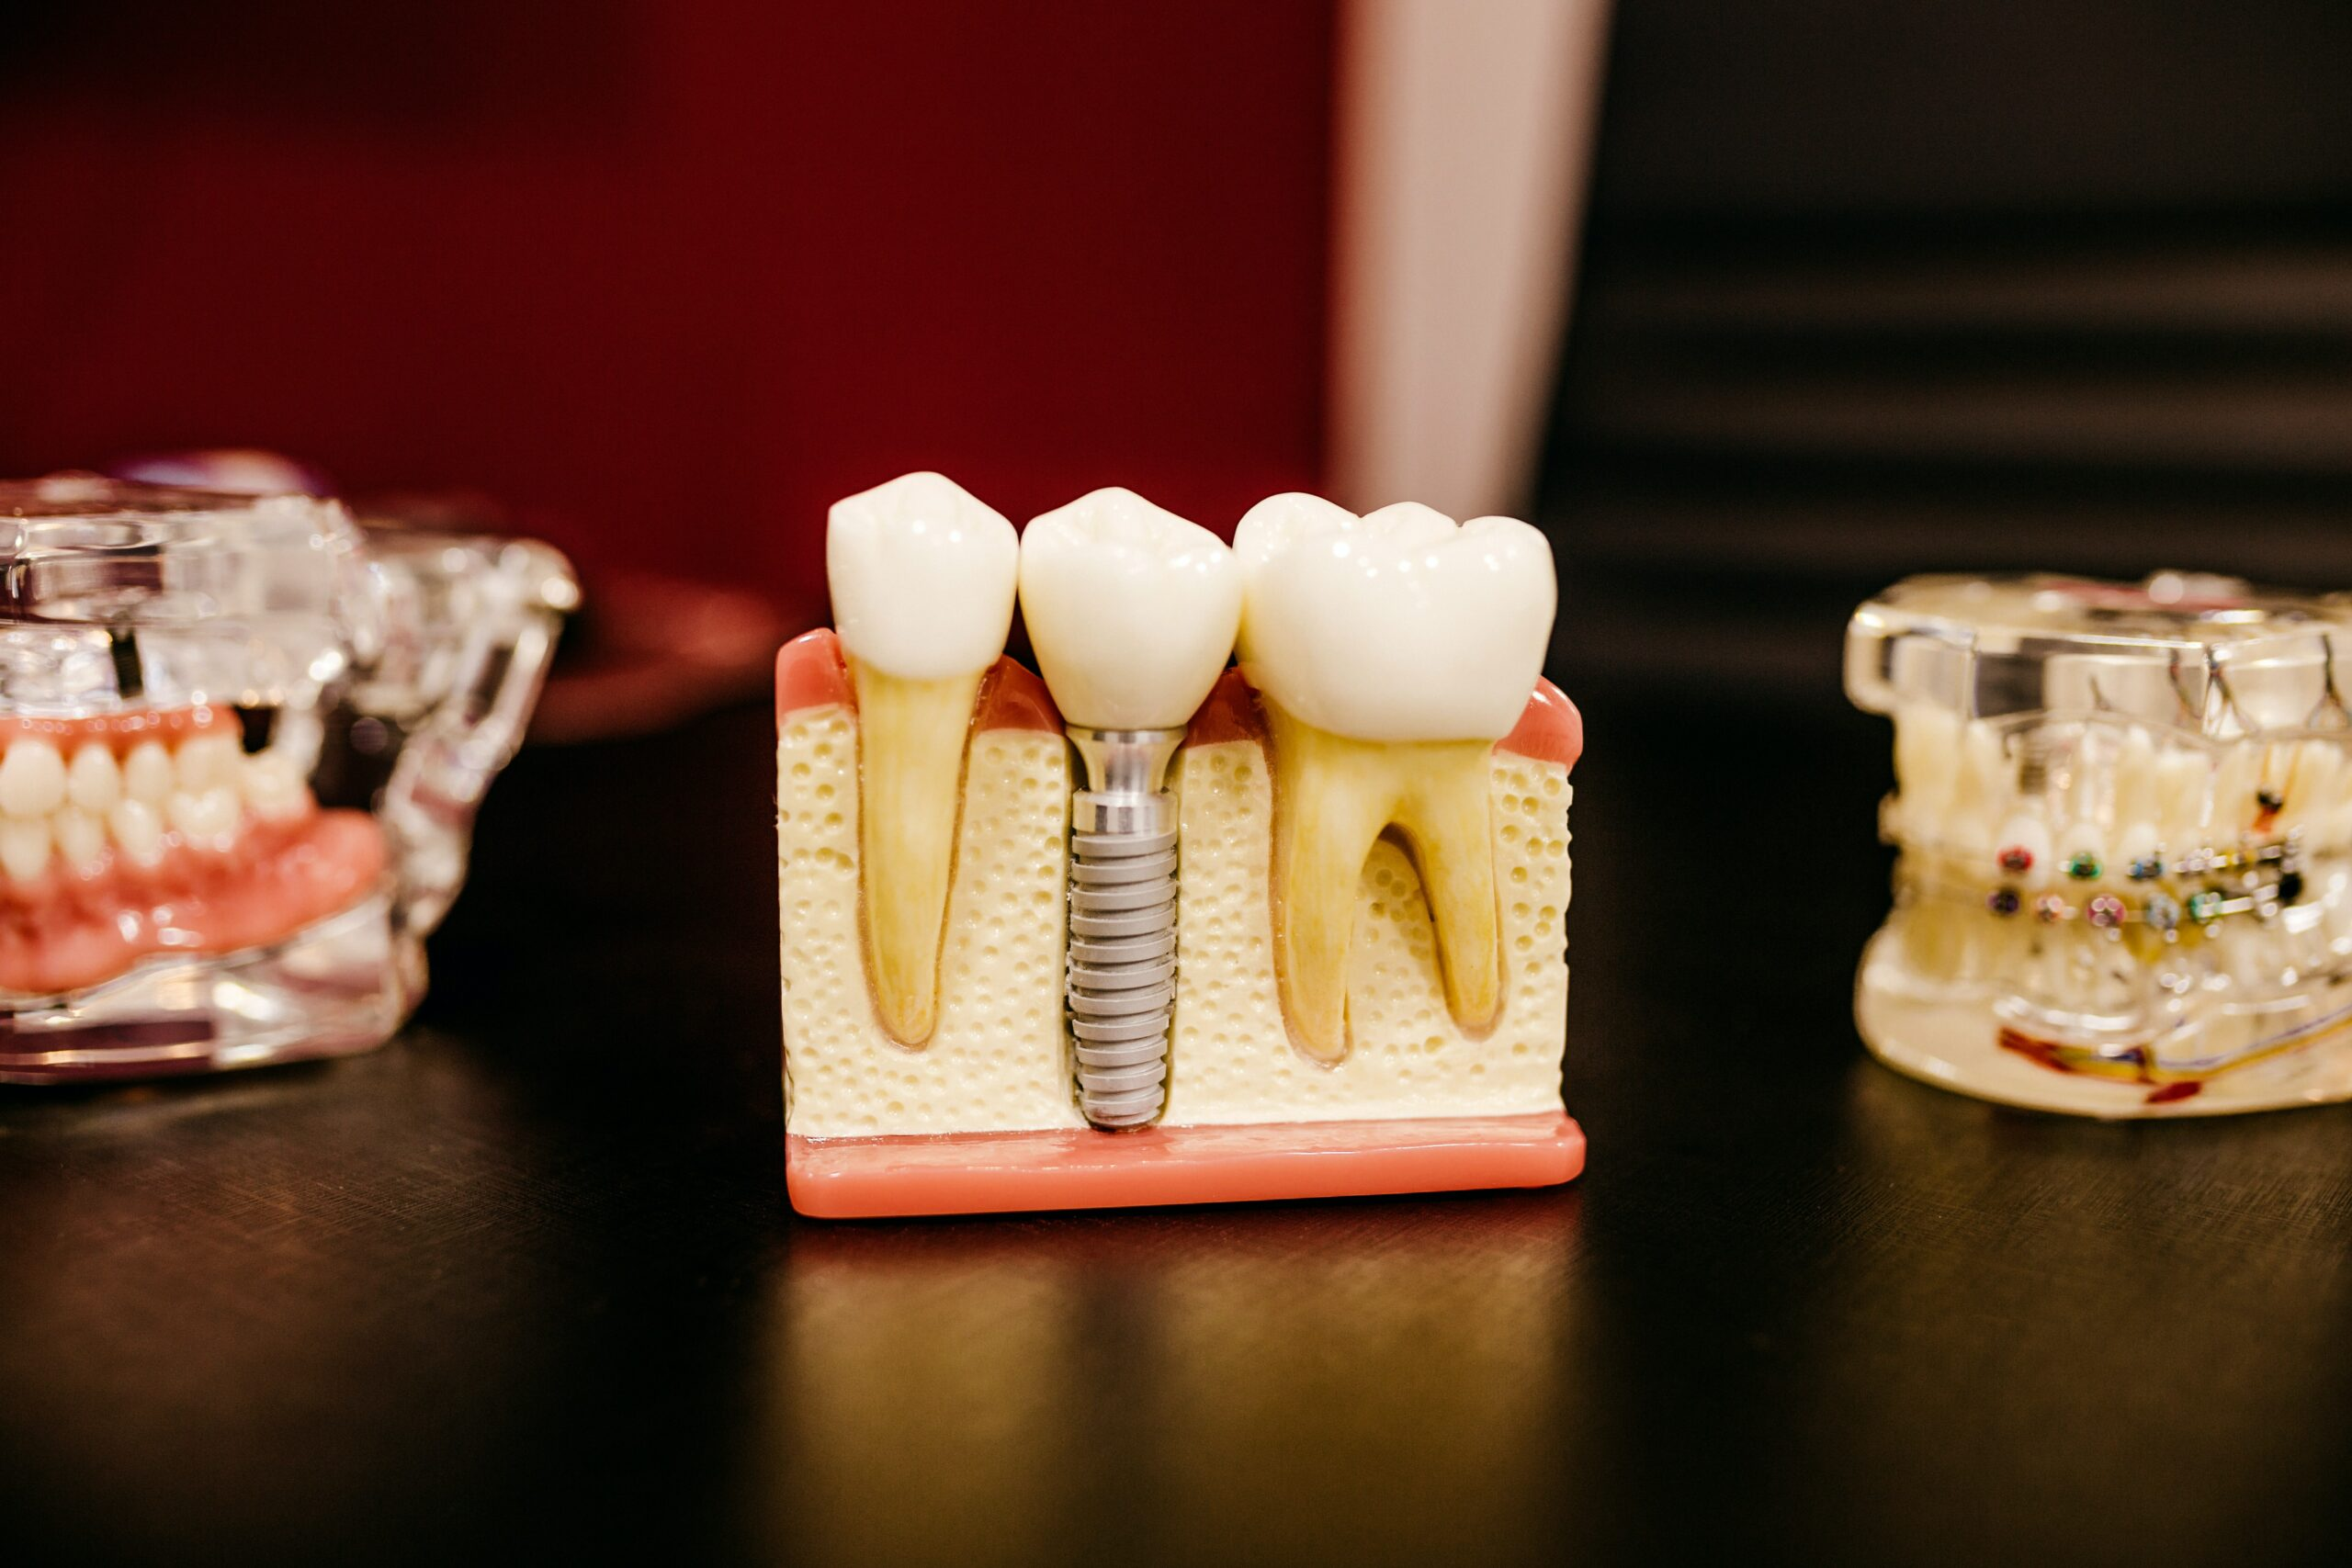 Dental Implants are a way to replace a missing tooth